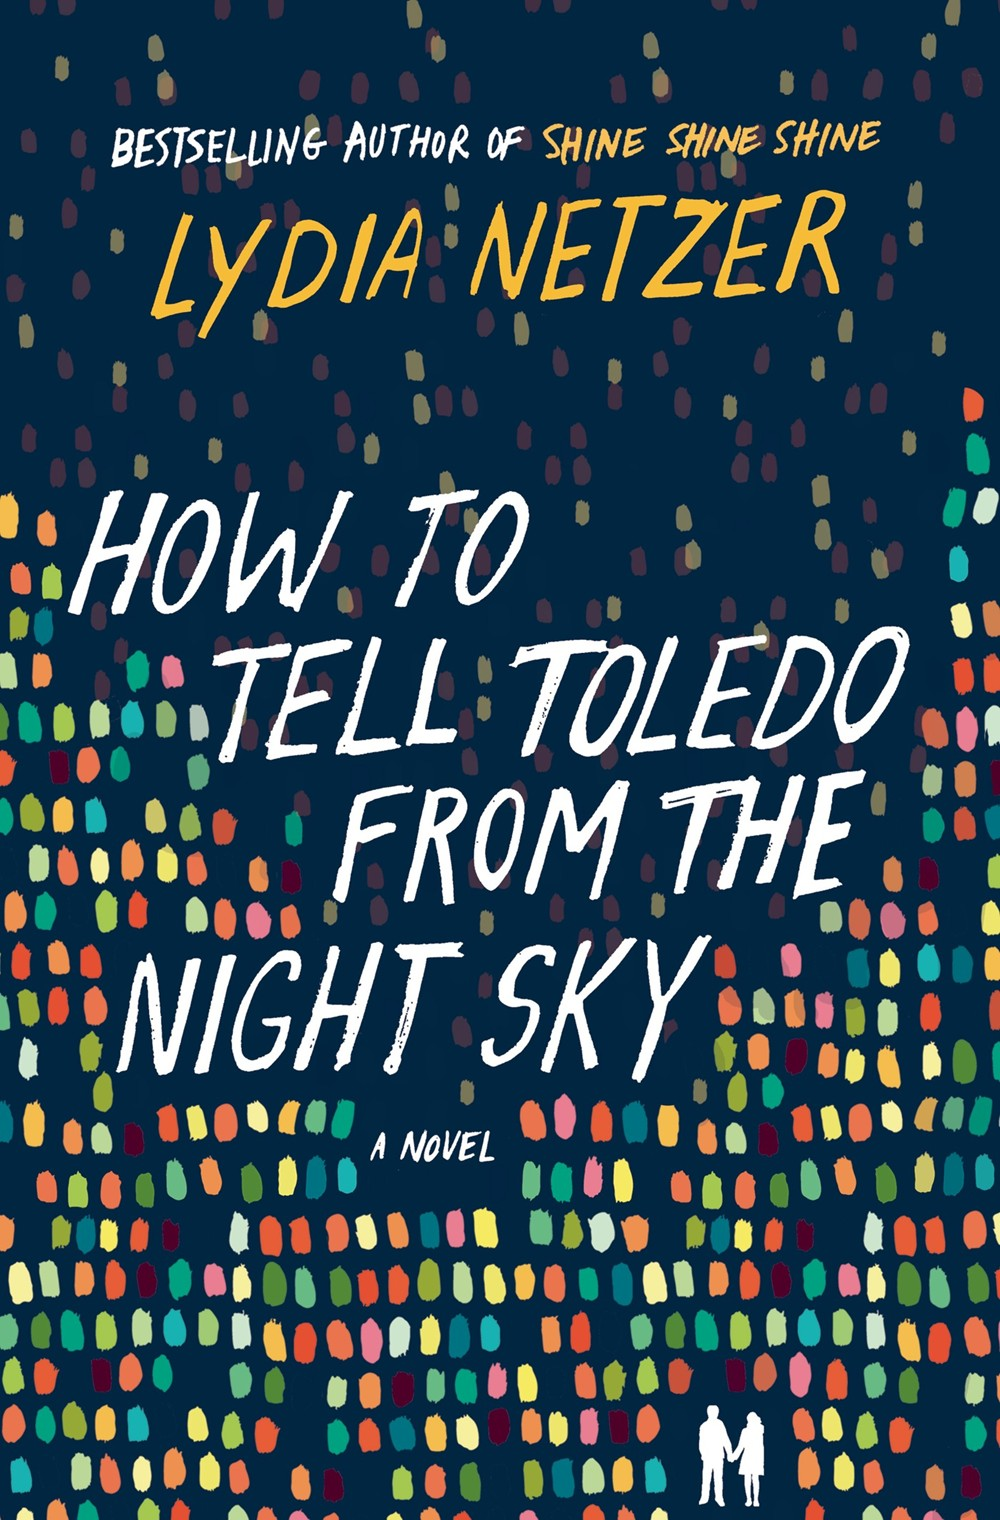 How to Tell Toledo from the Night Sky by Lynda Netzer